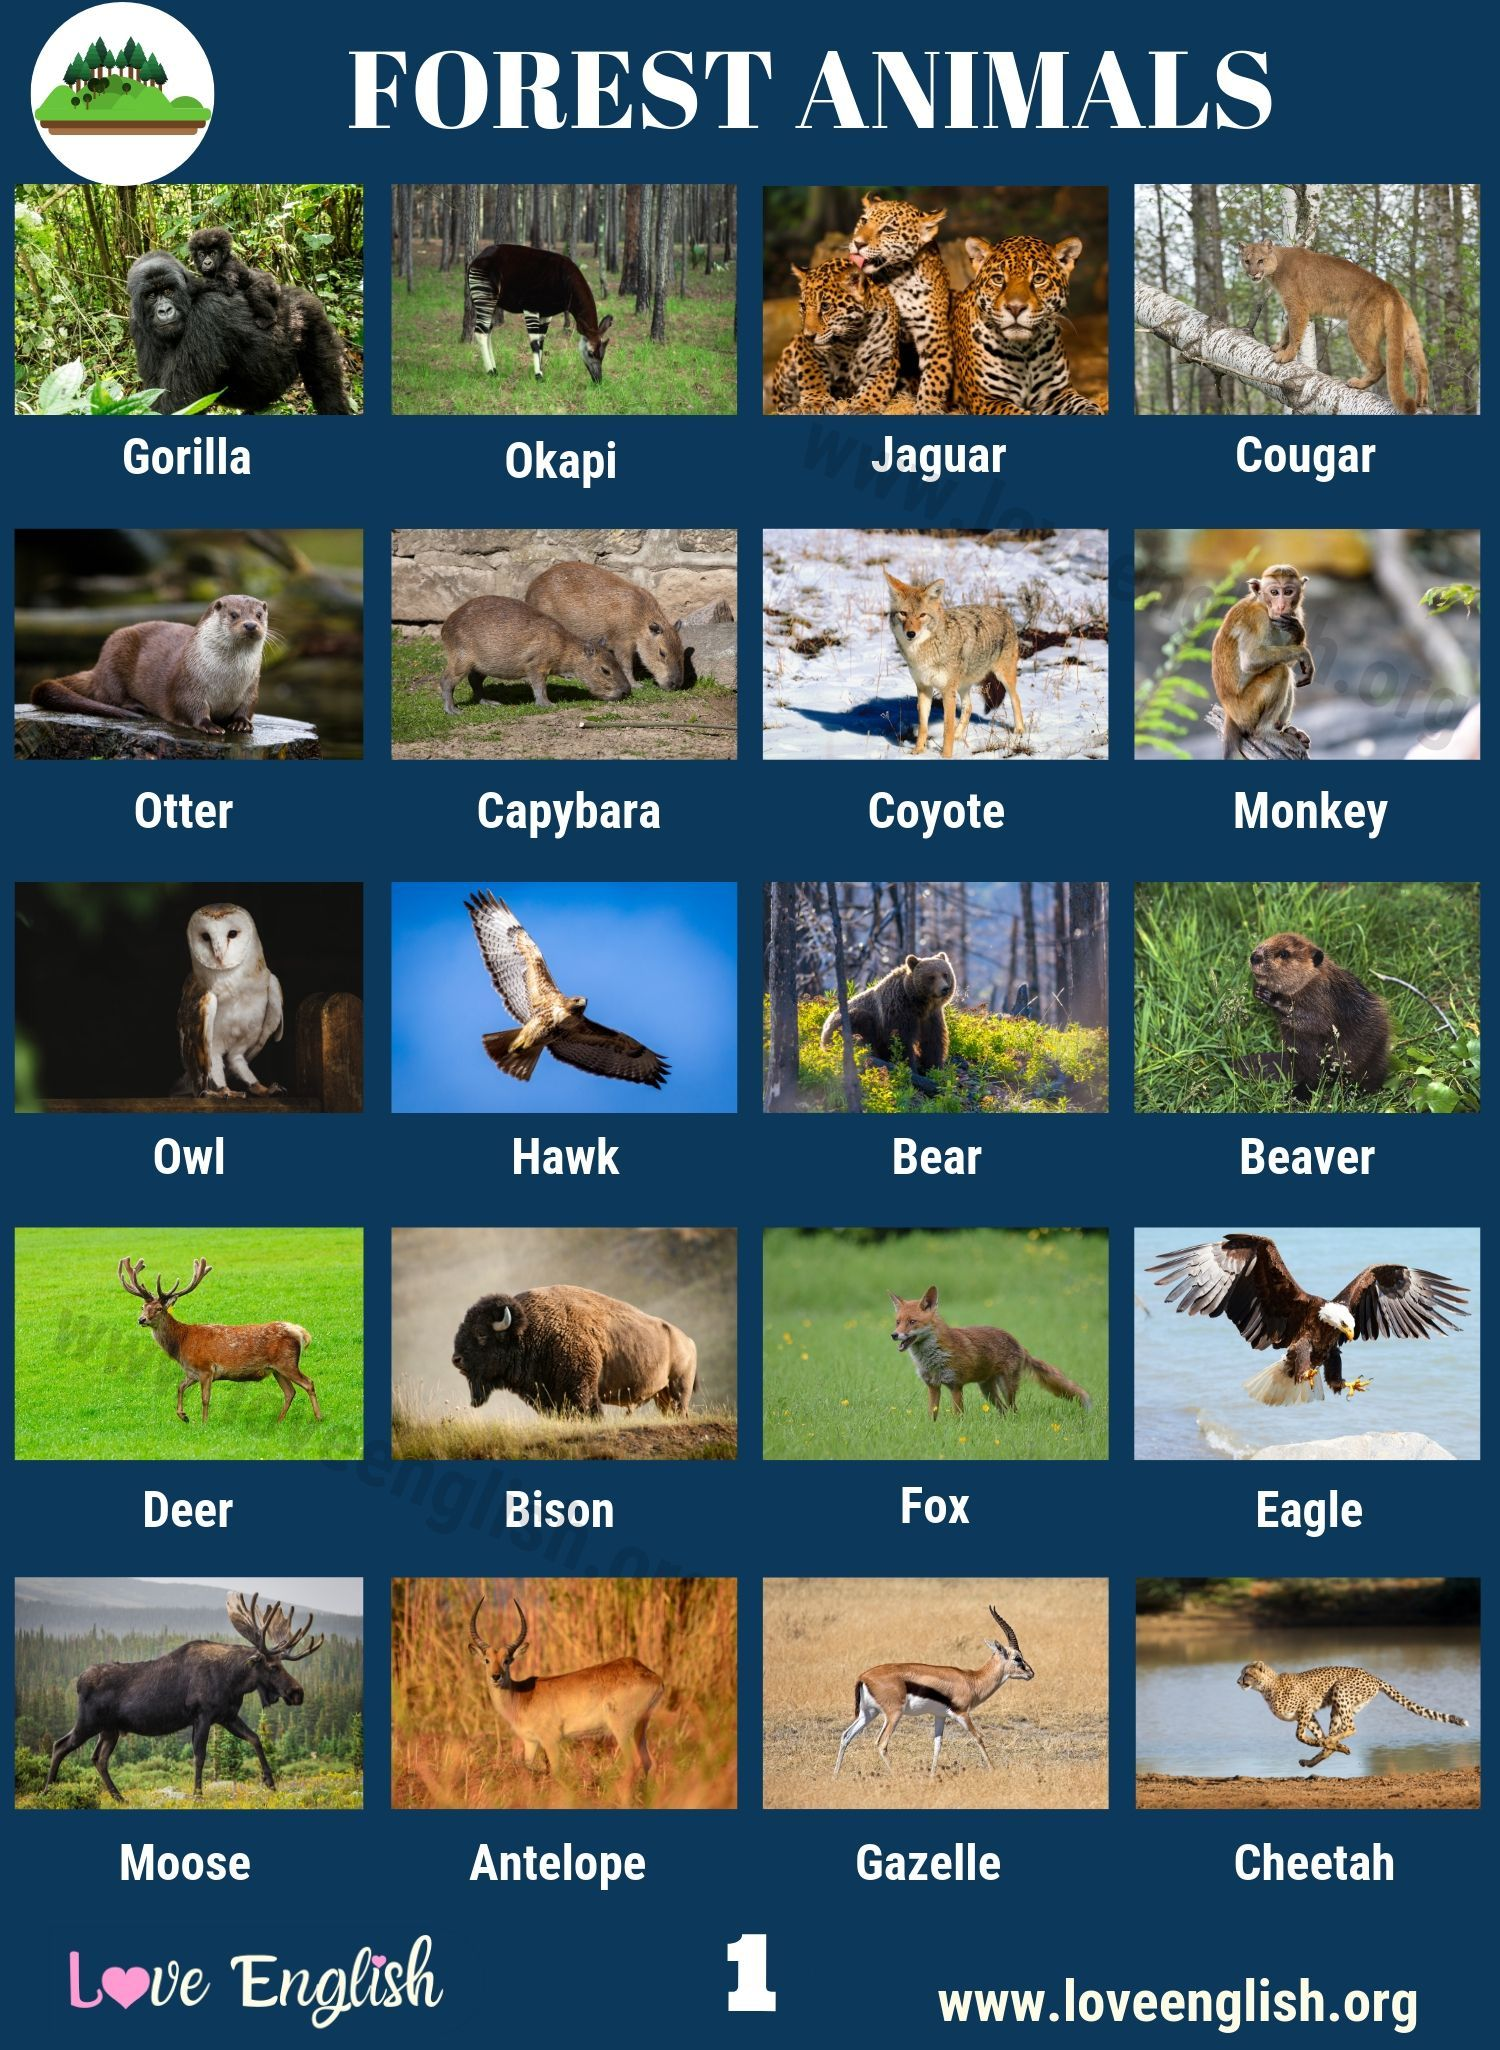 Forest Animals 40 Common Names of Animals in the Forest